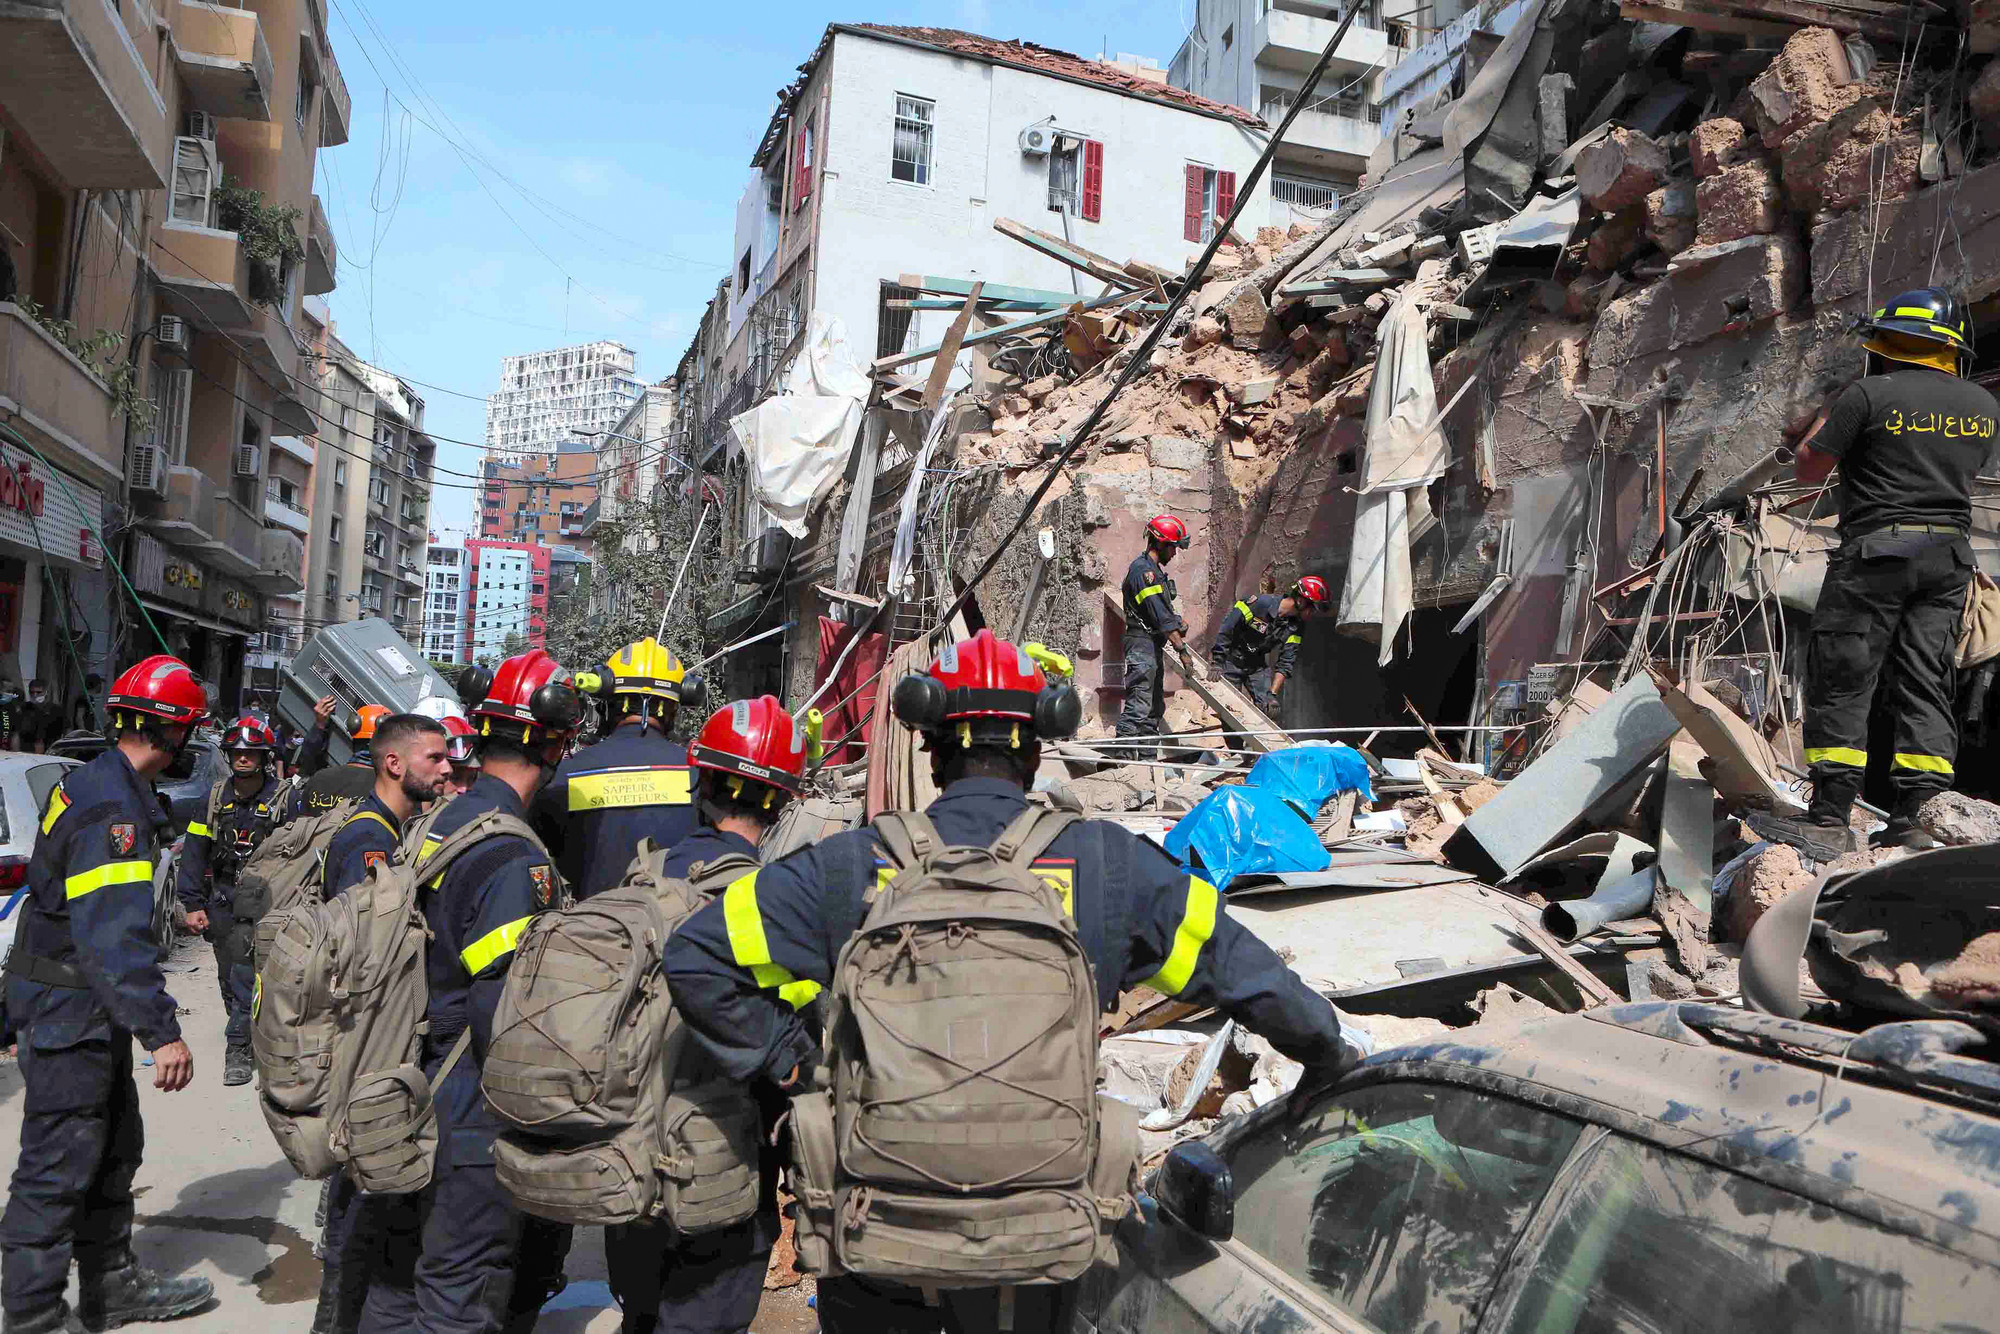 Firemen stand in the rubble of a destroyed city block.